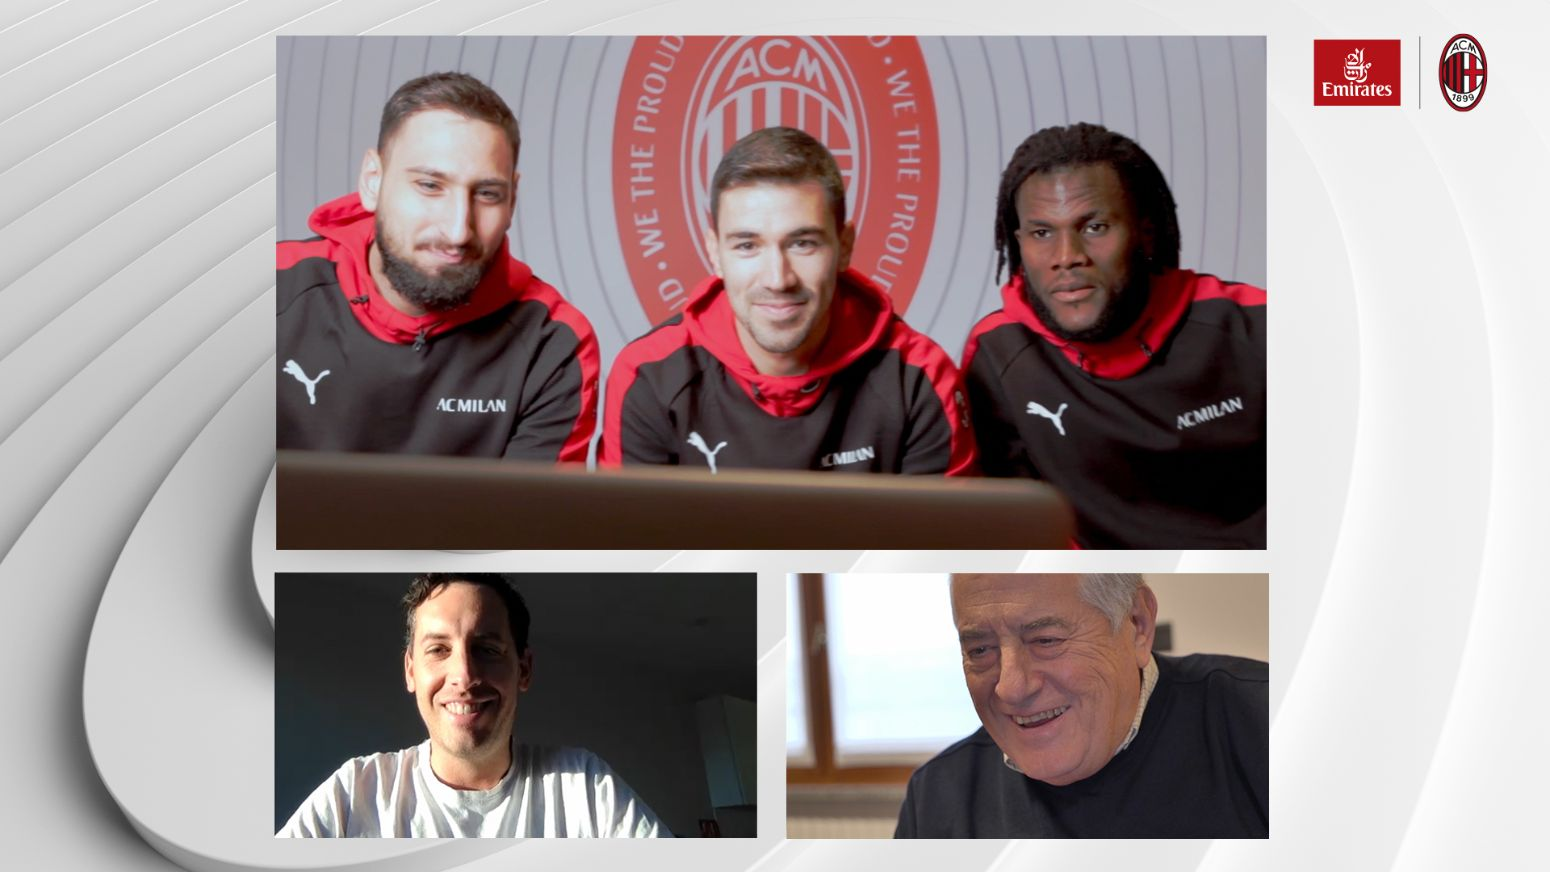 Latest 2020 video call: Emirates Airlines dazzles fans around the world with the help of AC Milan, Arsenal and Real Madrid